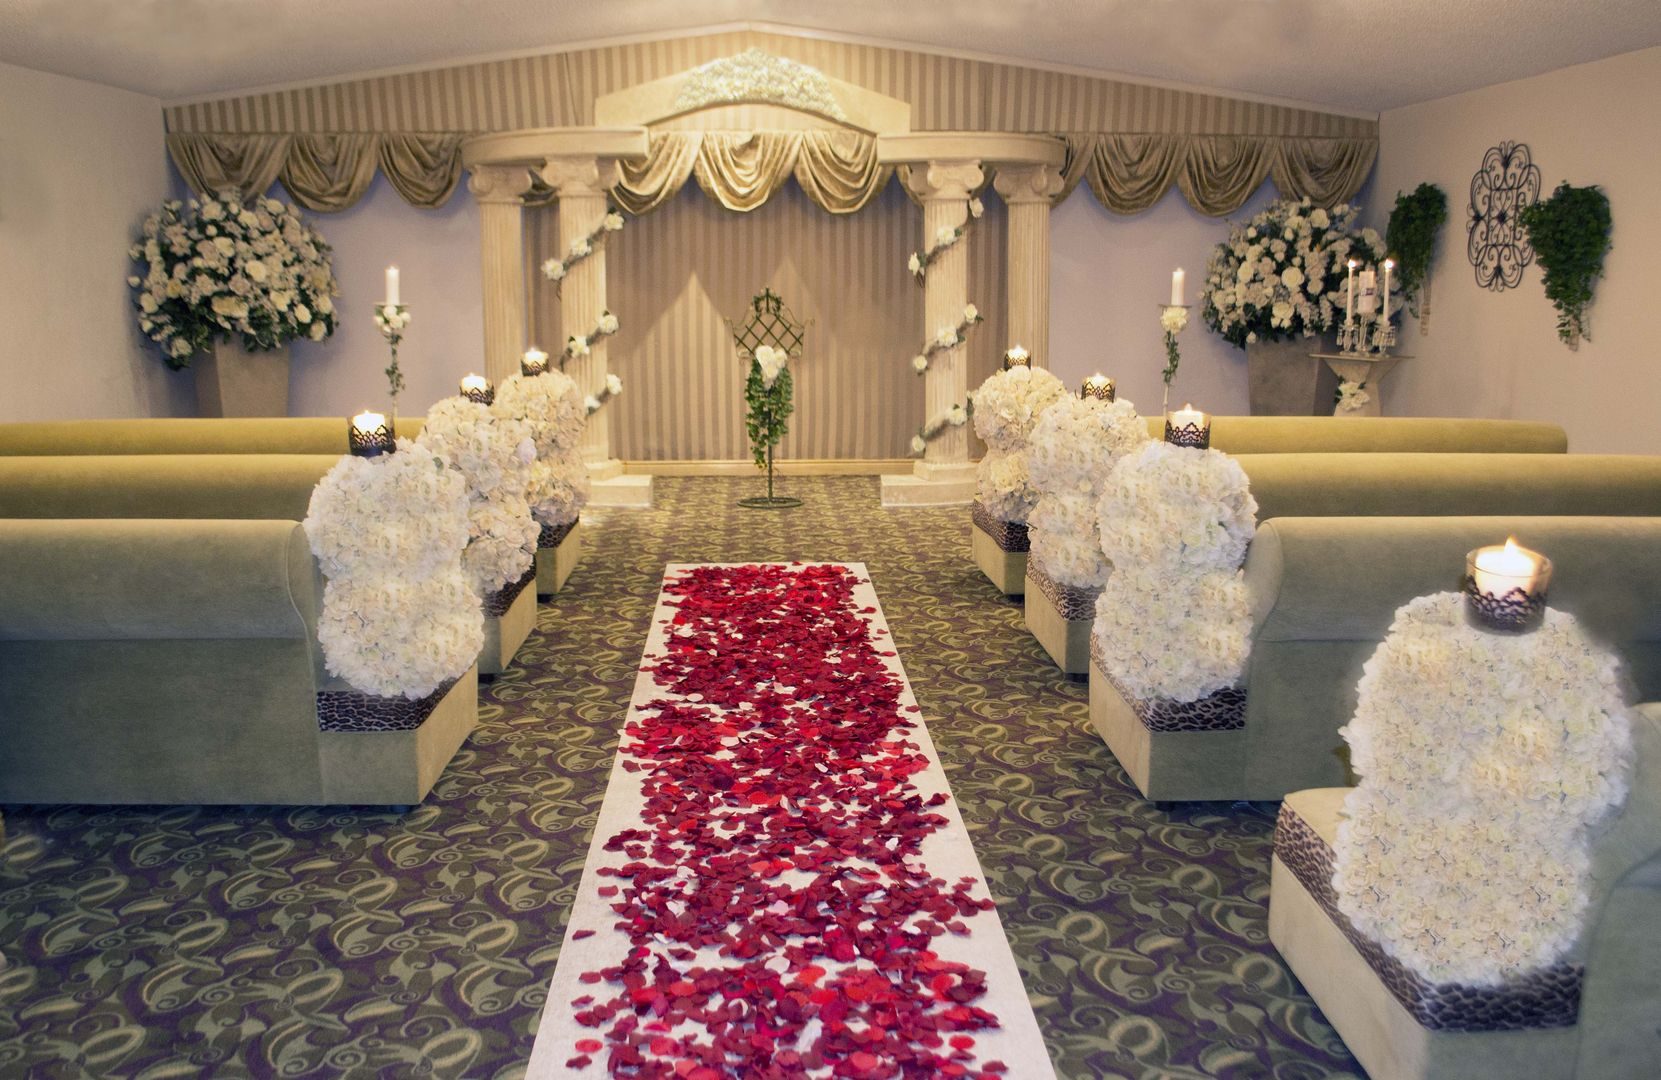 Affordable Elegance And Luxury Belleza Wedding Chapel Las Vegas Is One Of The Most Romantic